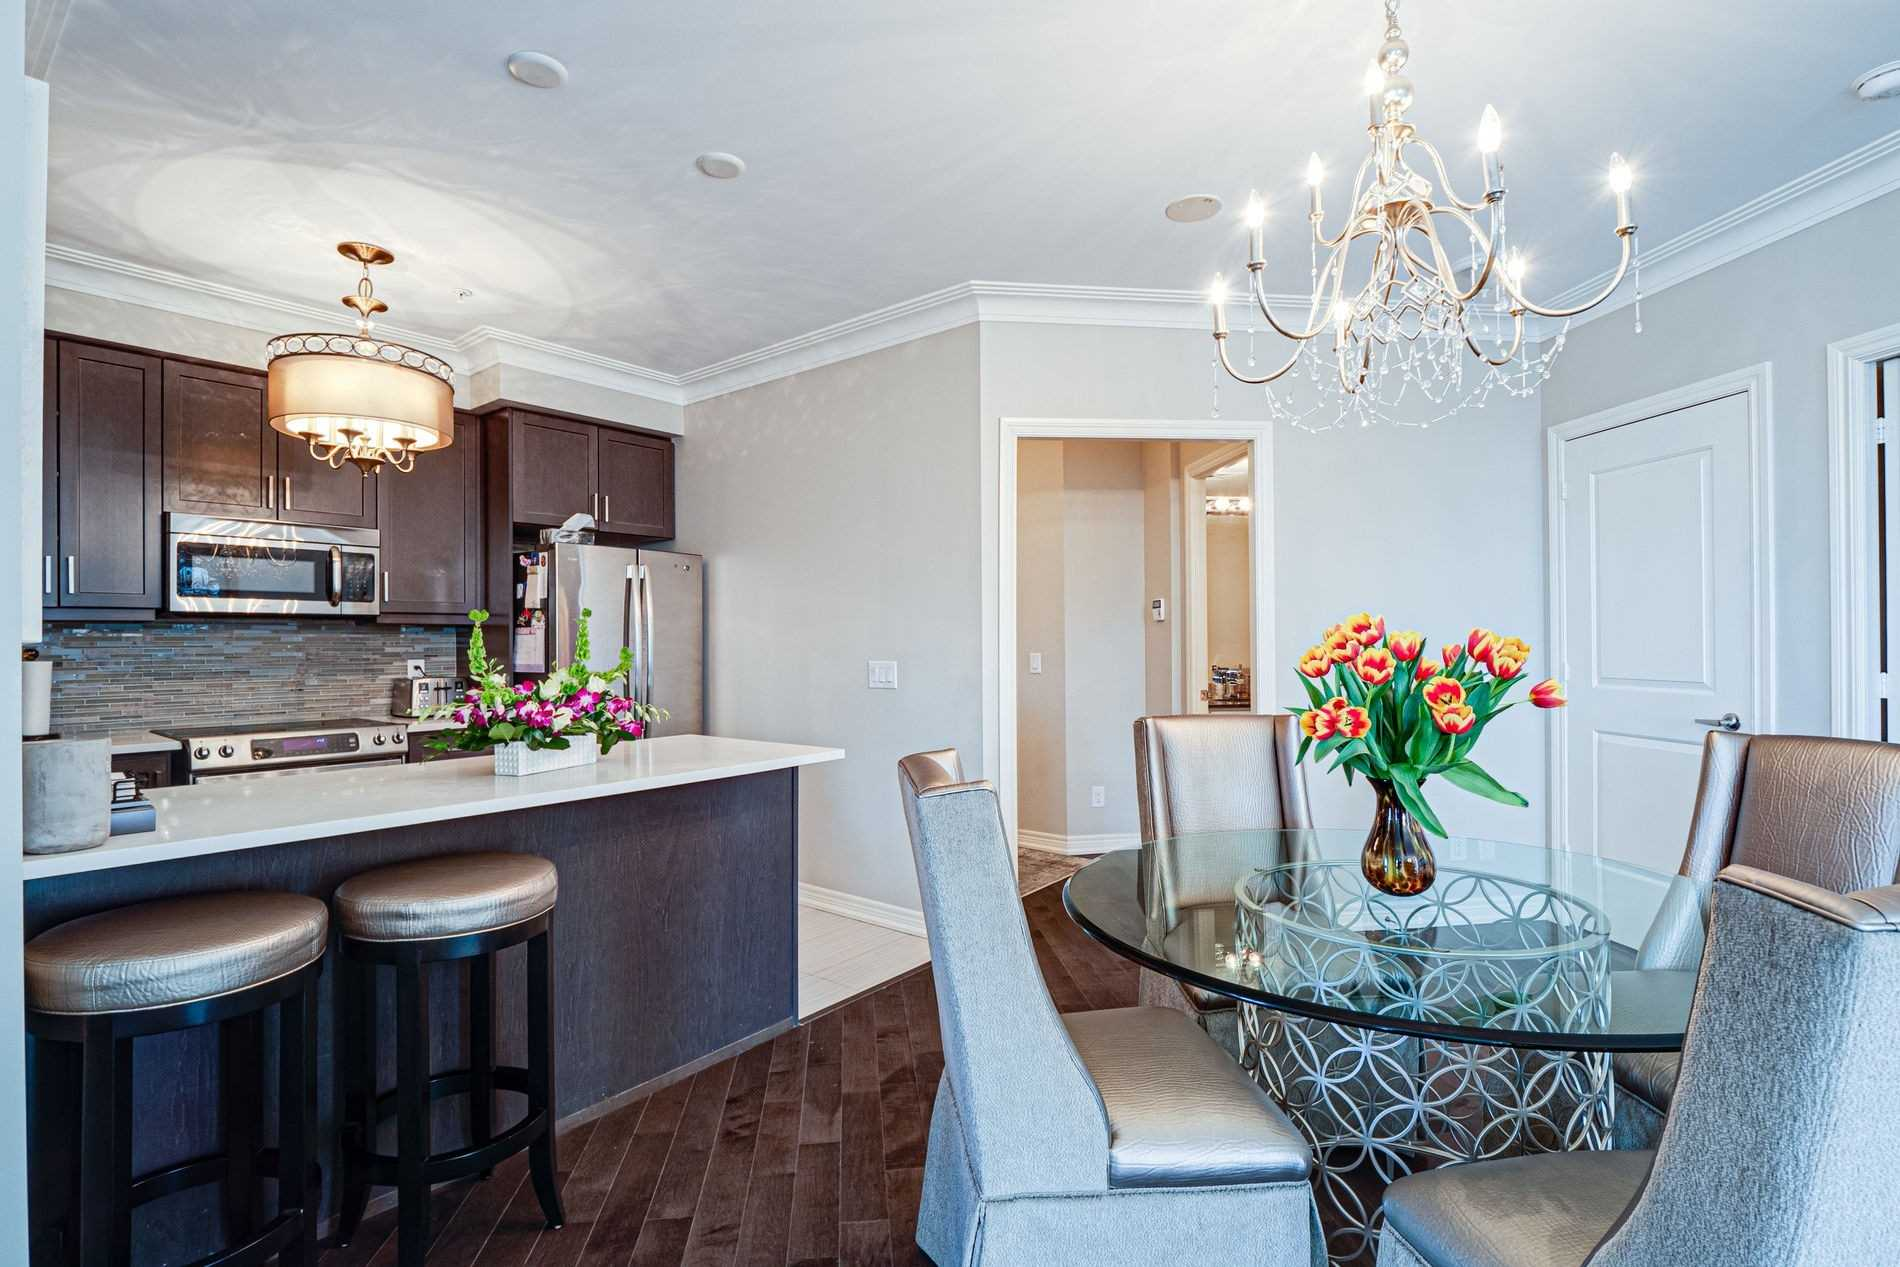 Image 16 of 40 showing inside of 2 Bedroom Condo Apt Apartment for Sale at 9255 Jane St Unit# 1702, Vaughan L6A0K1